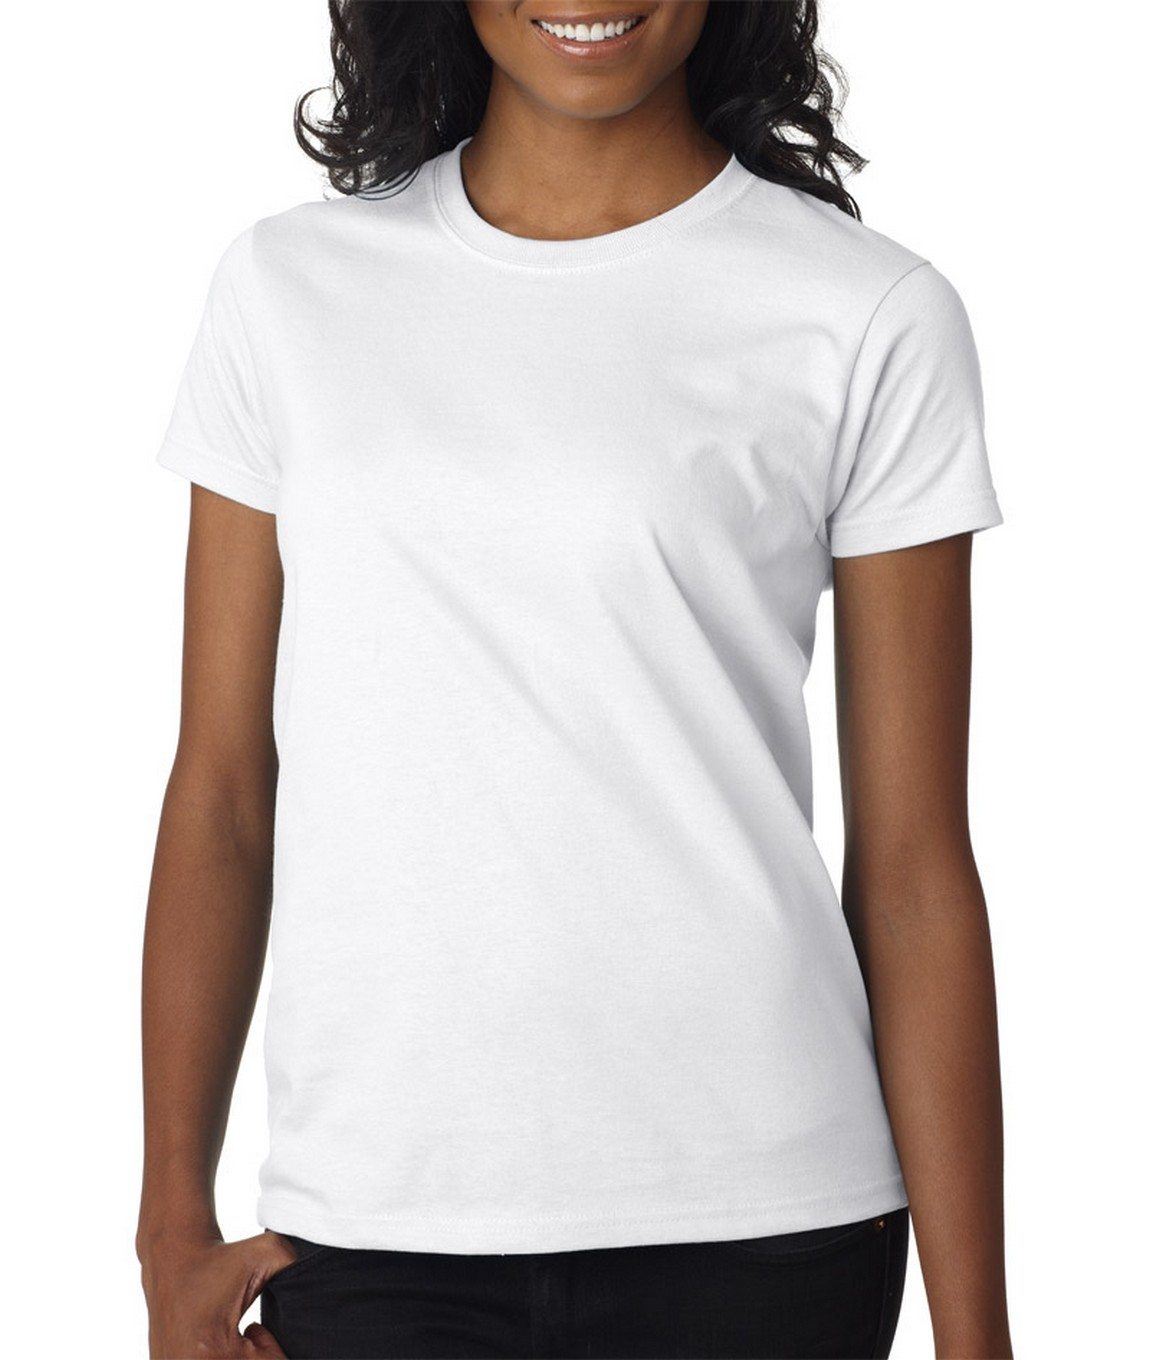 Blank women 39 s white t shirt rnk shops for Who makes the best white t shirts